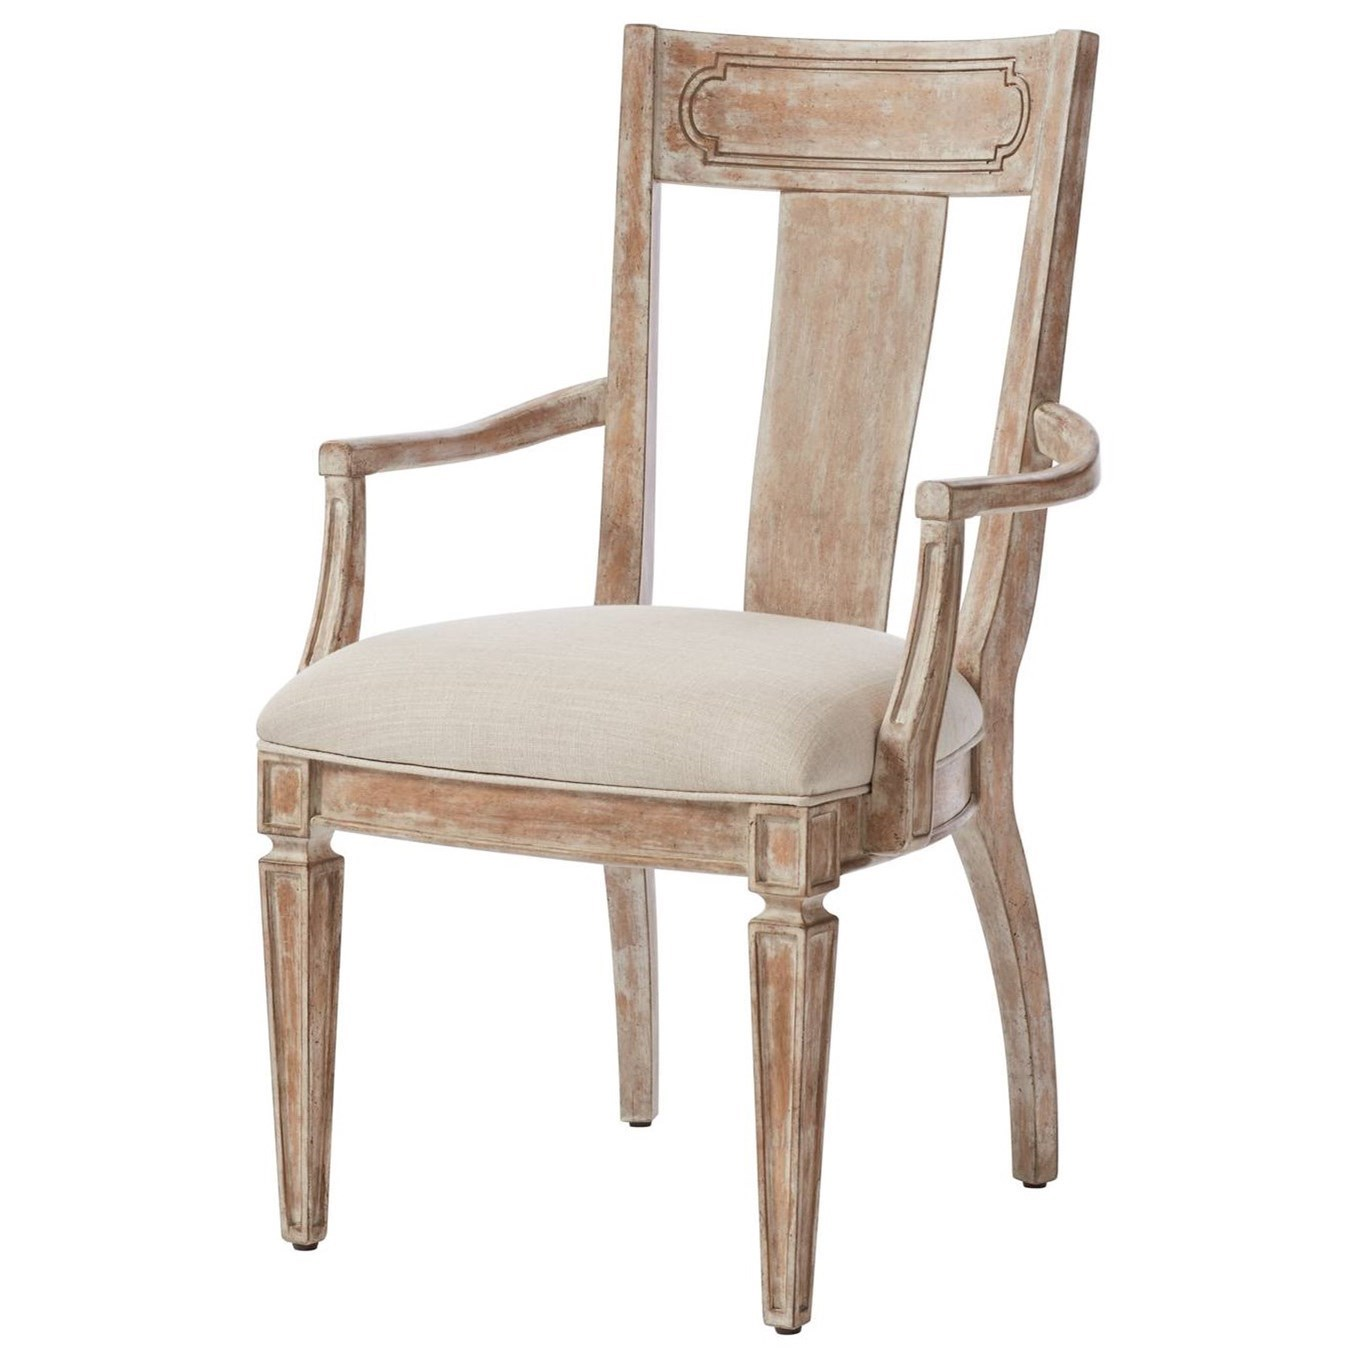 cottage style chairs serena and lily riviera stanley furniture juniper dell contemporary